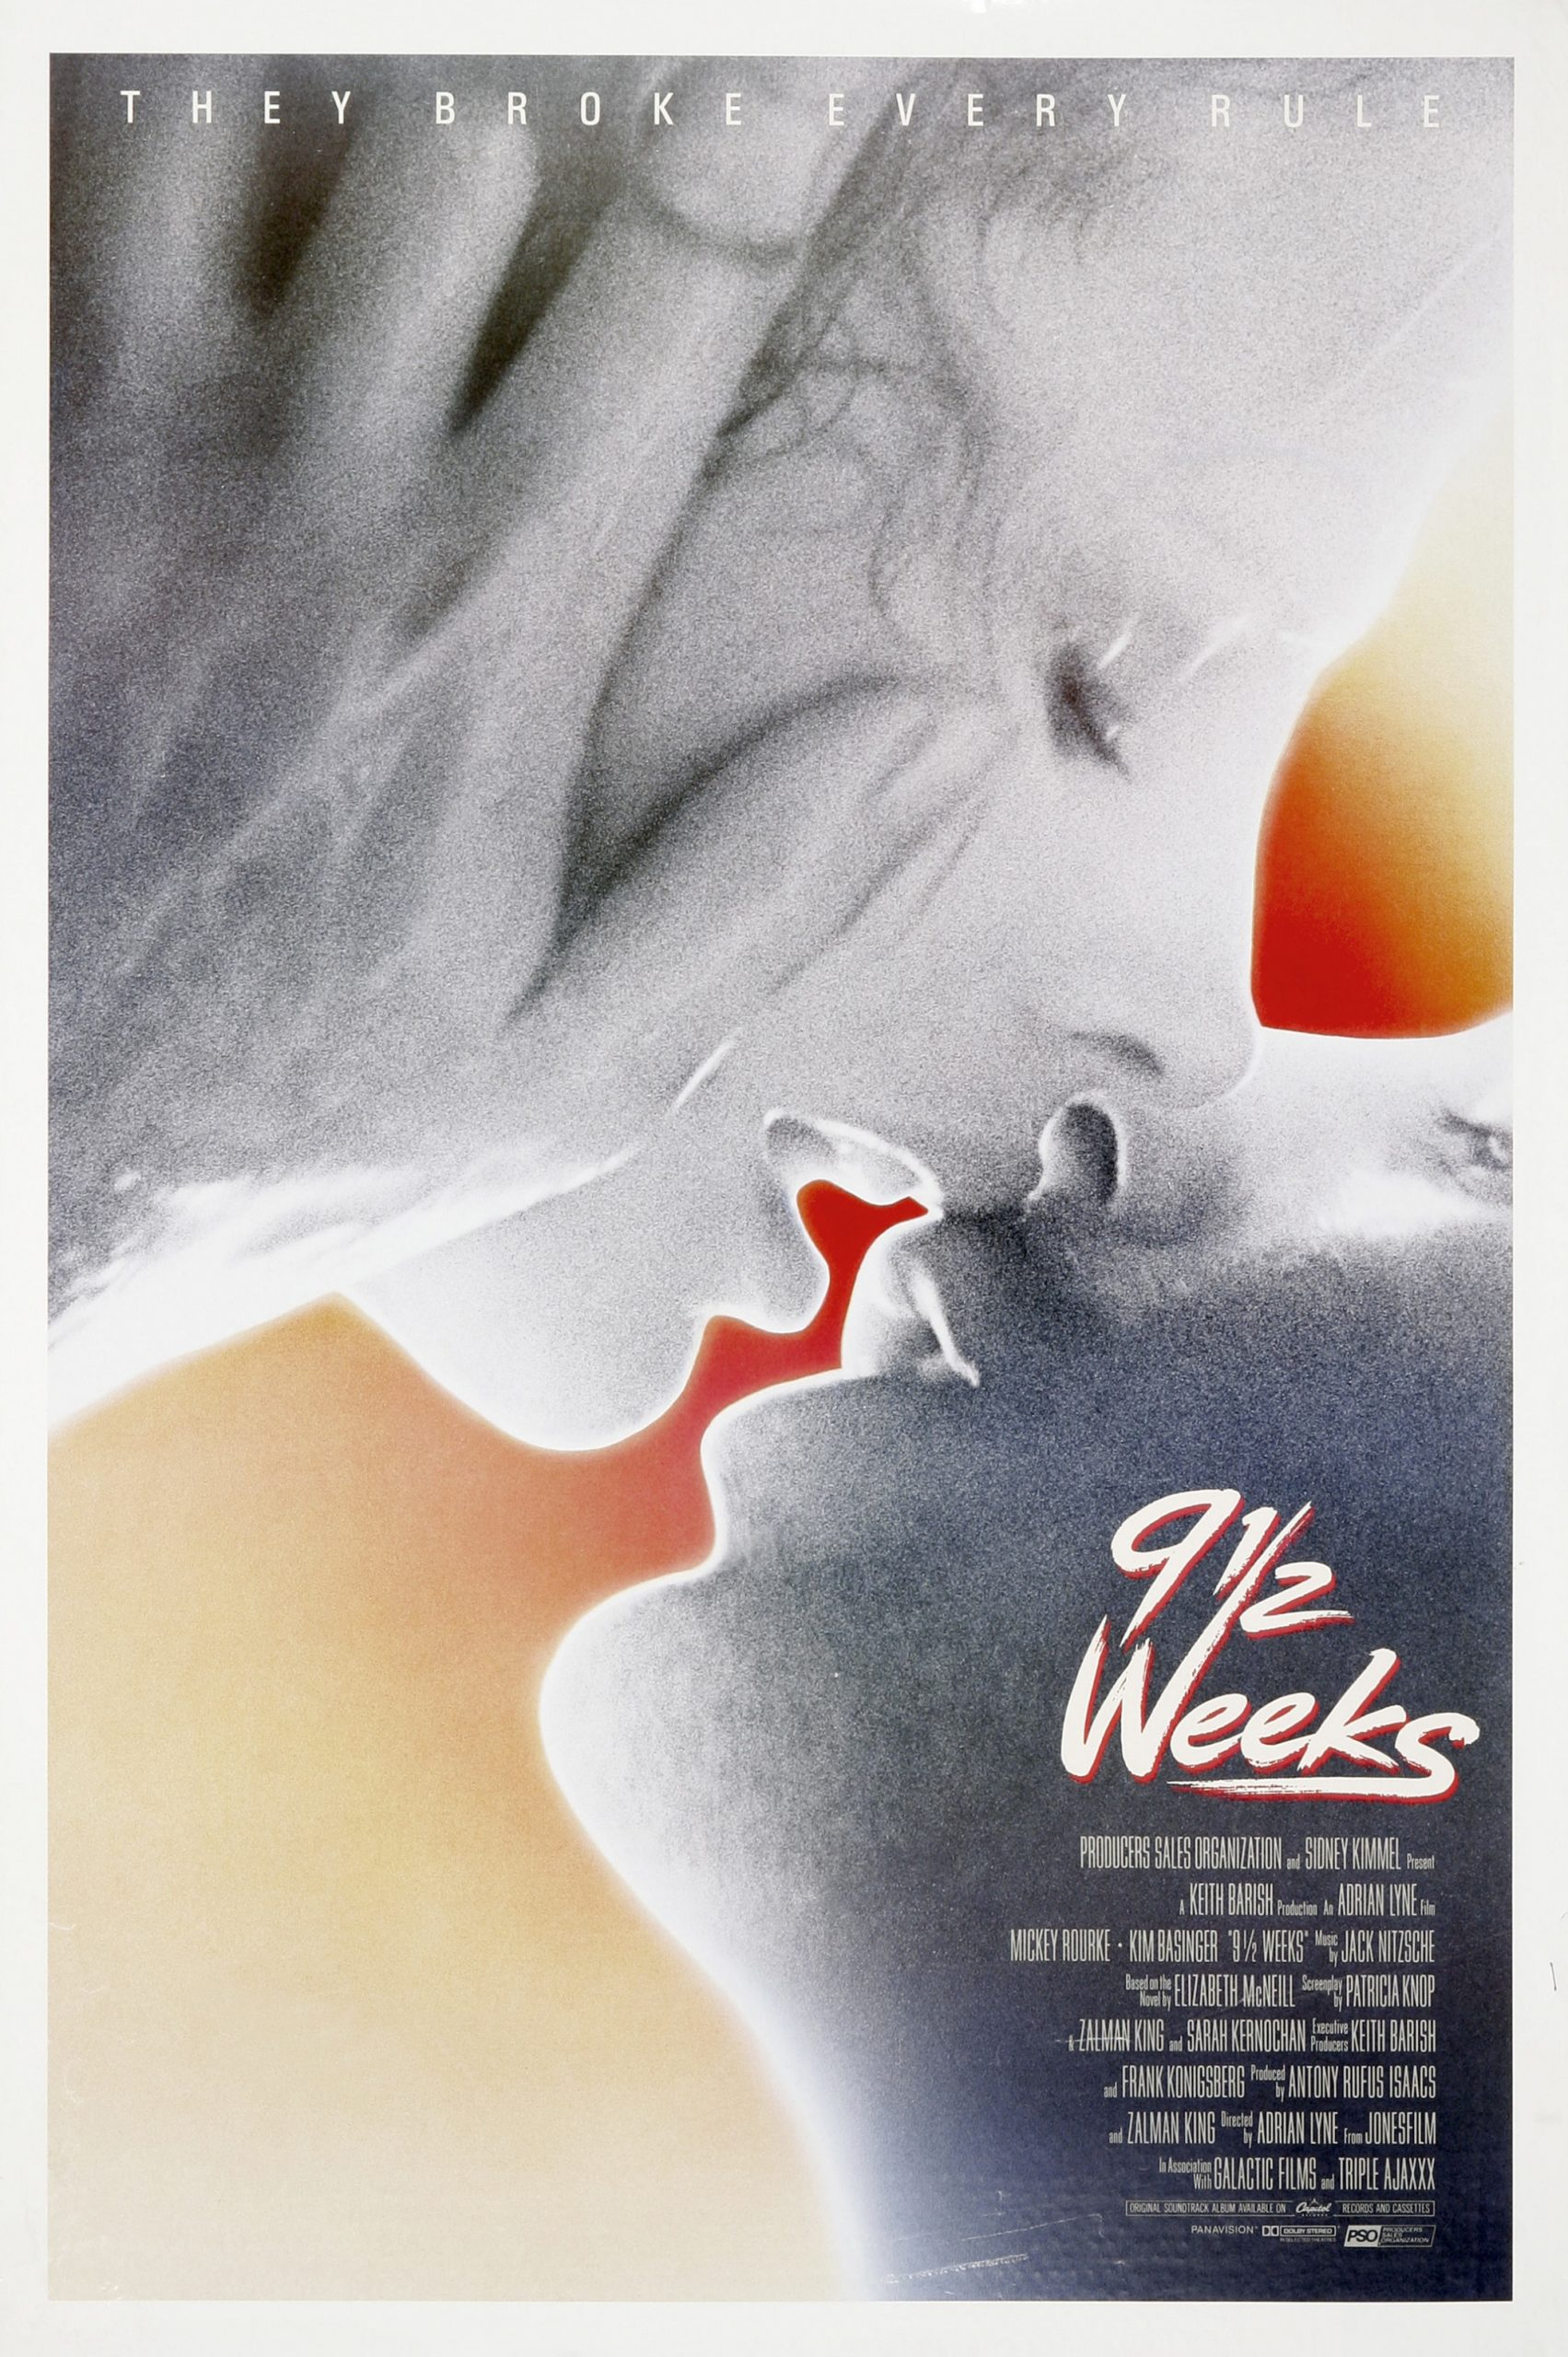 The original Nine 1/2 Weeks poster